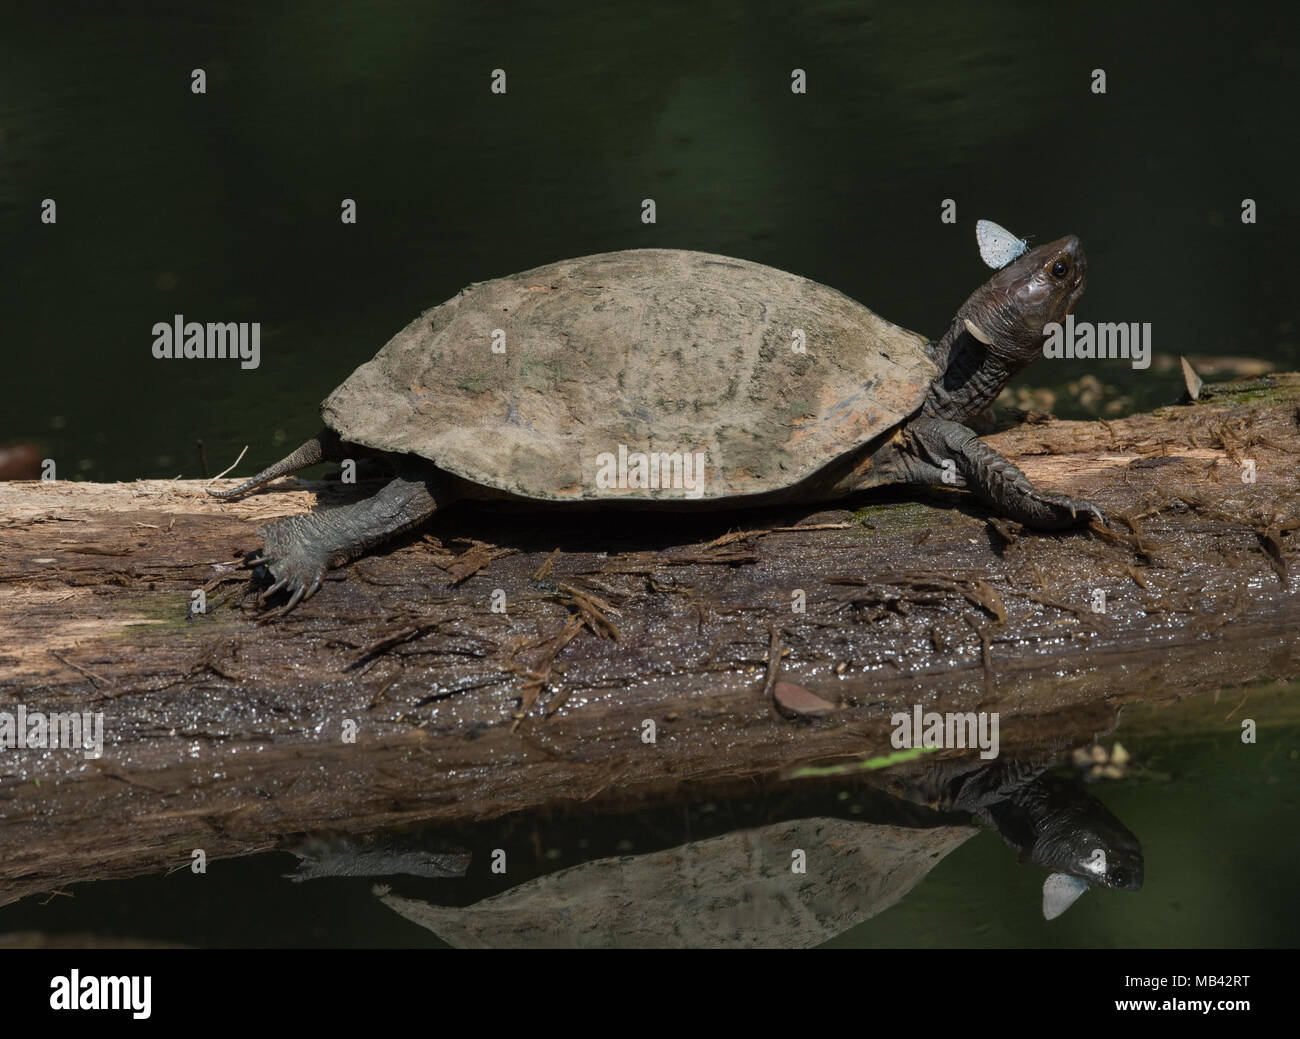 Oldham's leaf turtle (Cyclemys oldhamii ) is a species of turtle in the family Geoemydidae.Seen here in Kaeng Krachan National Park. - Stock Image